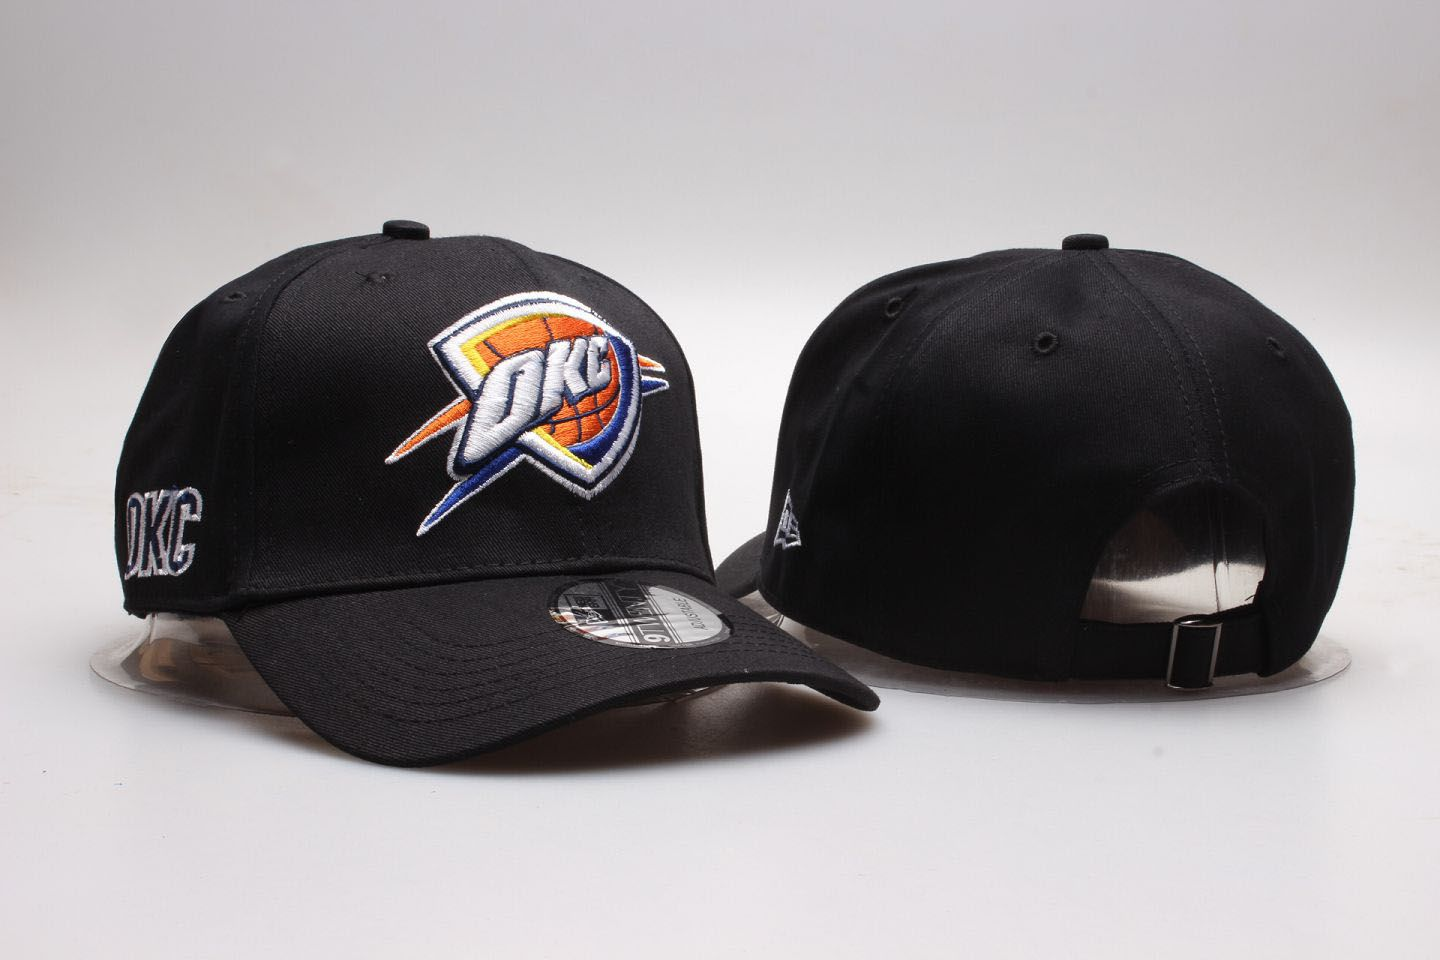 NBA Oklahoma City Thunder Snapback hat 201811253